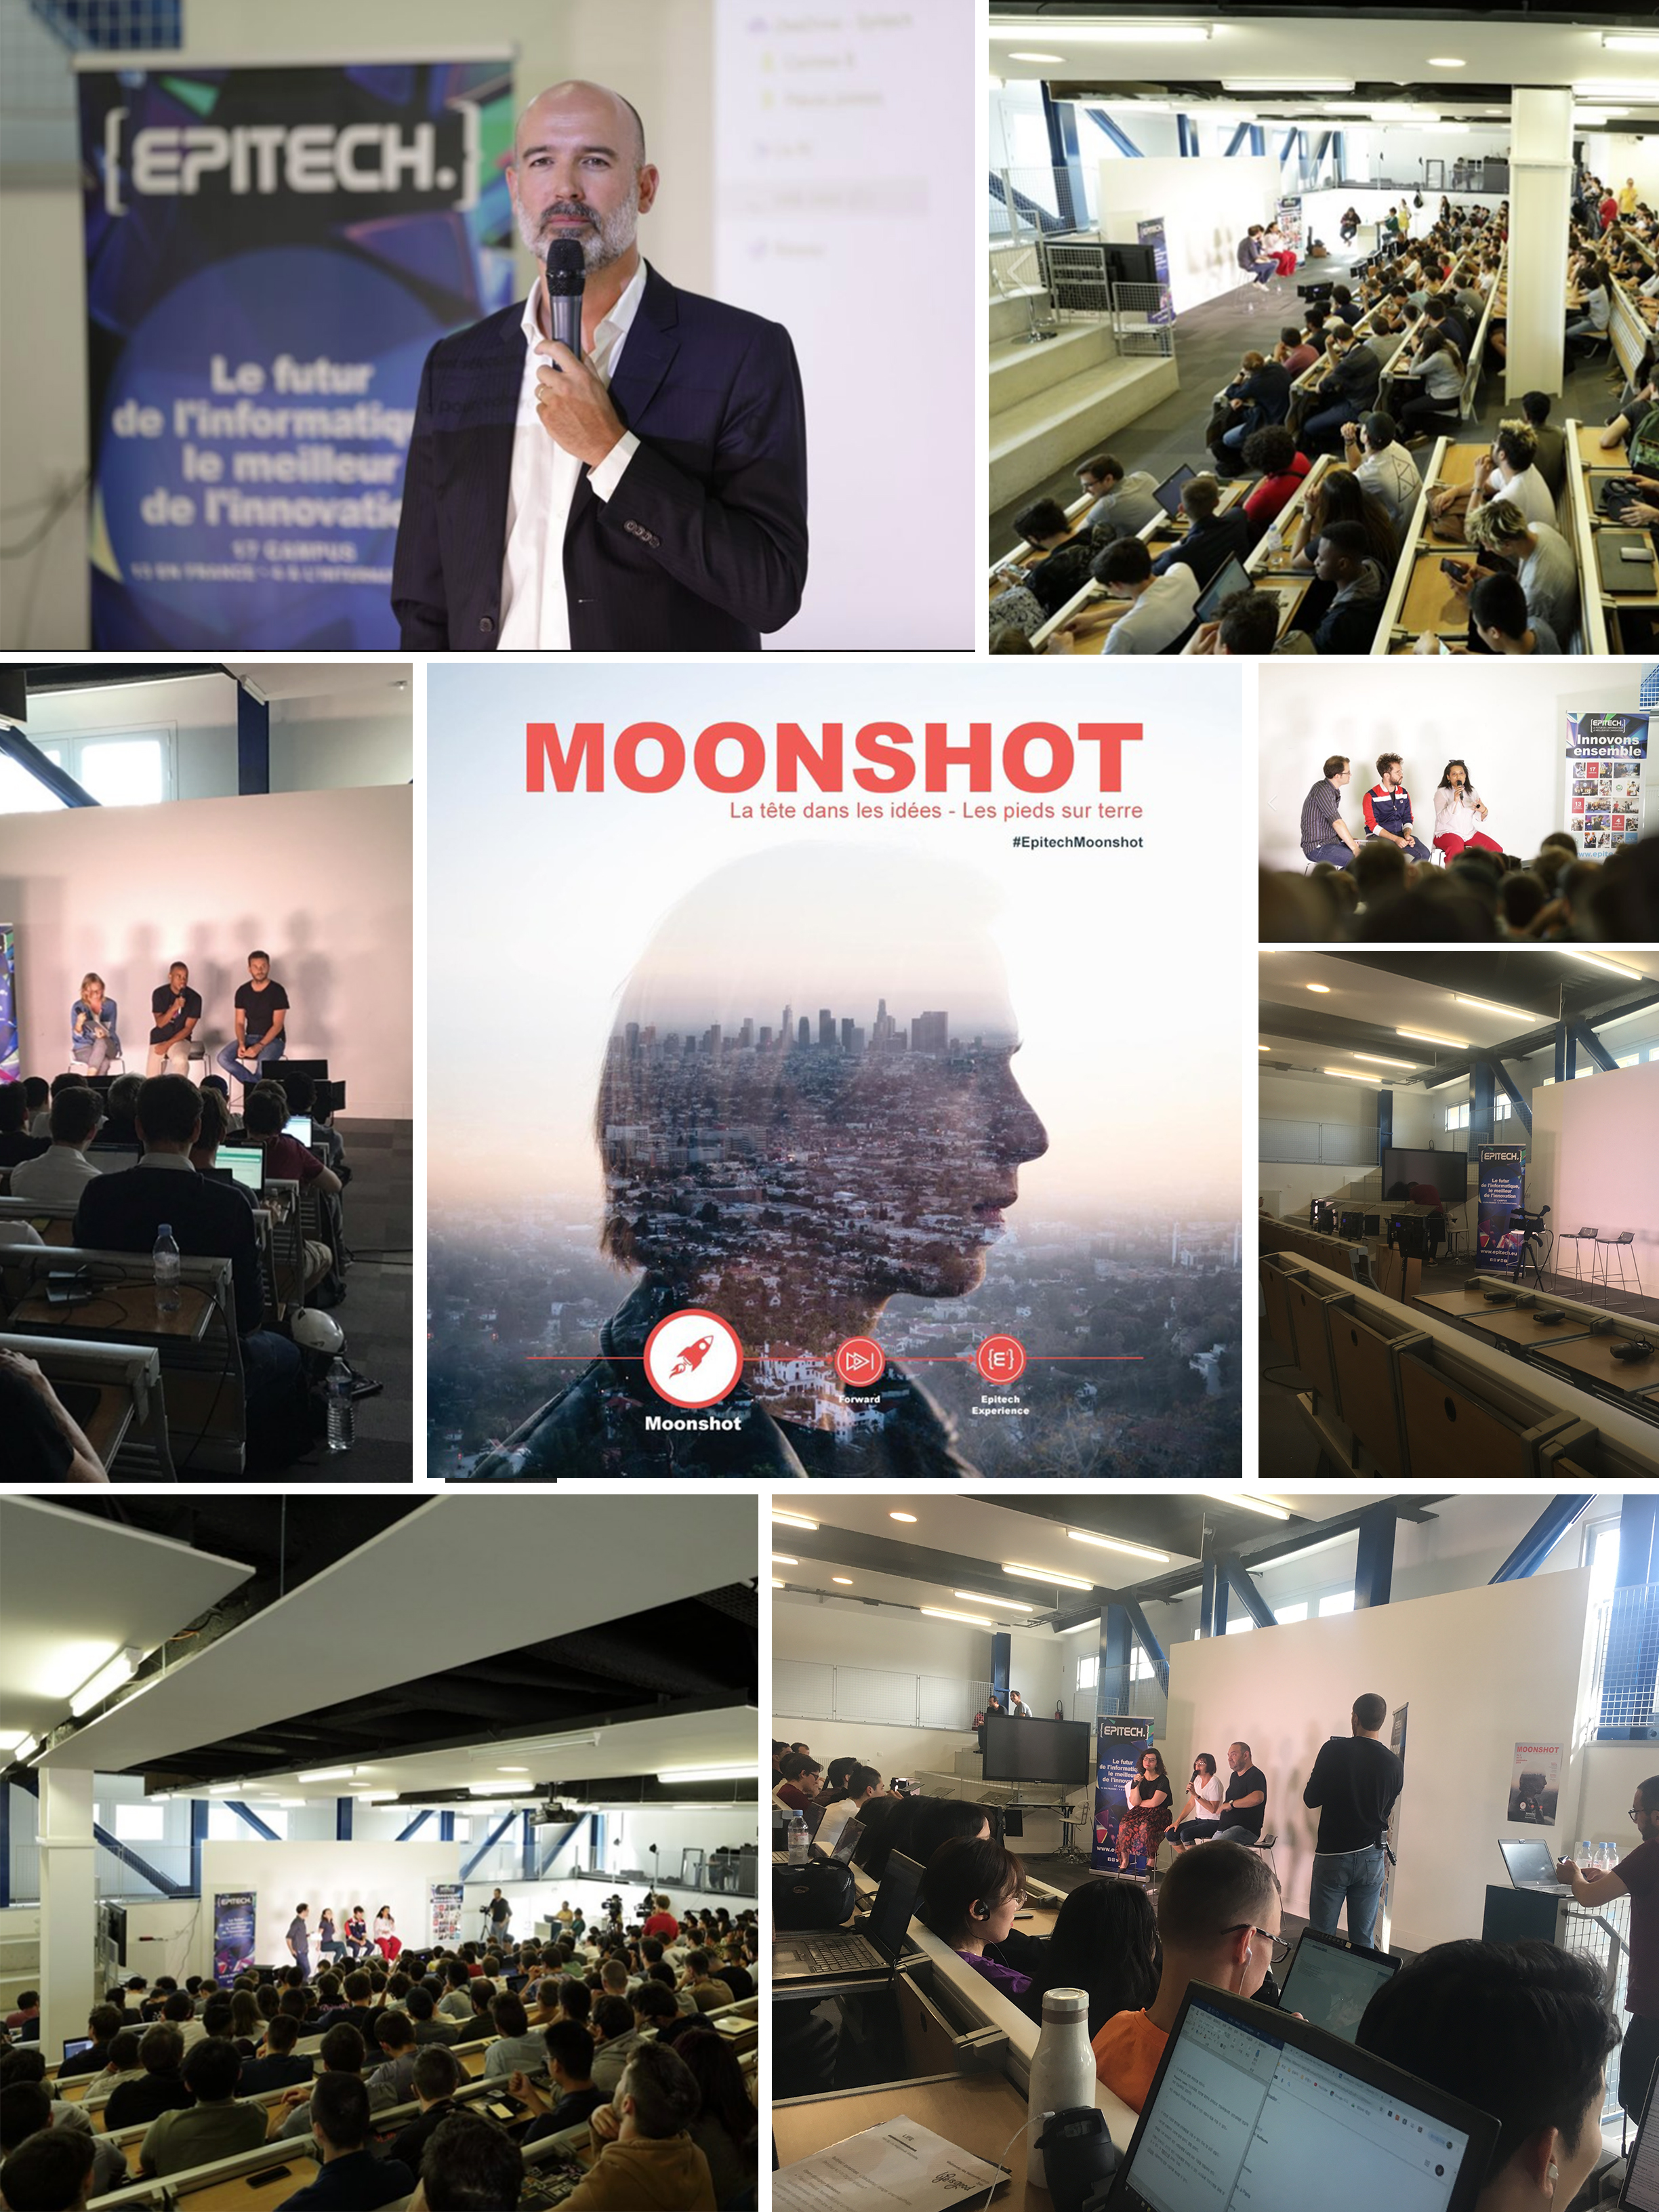 Epitech Moonshot